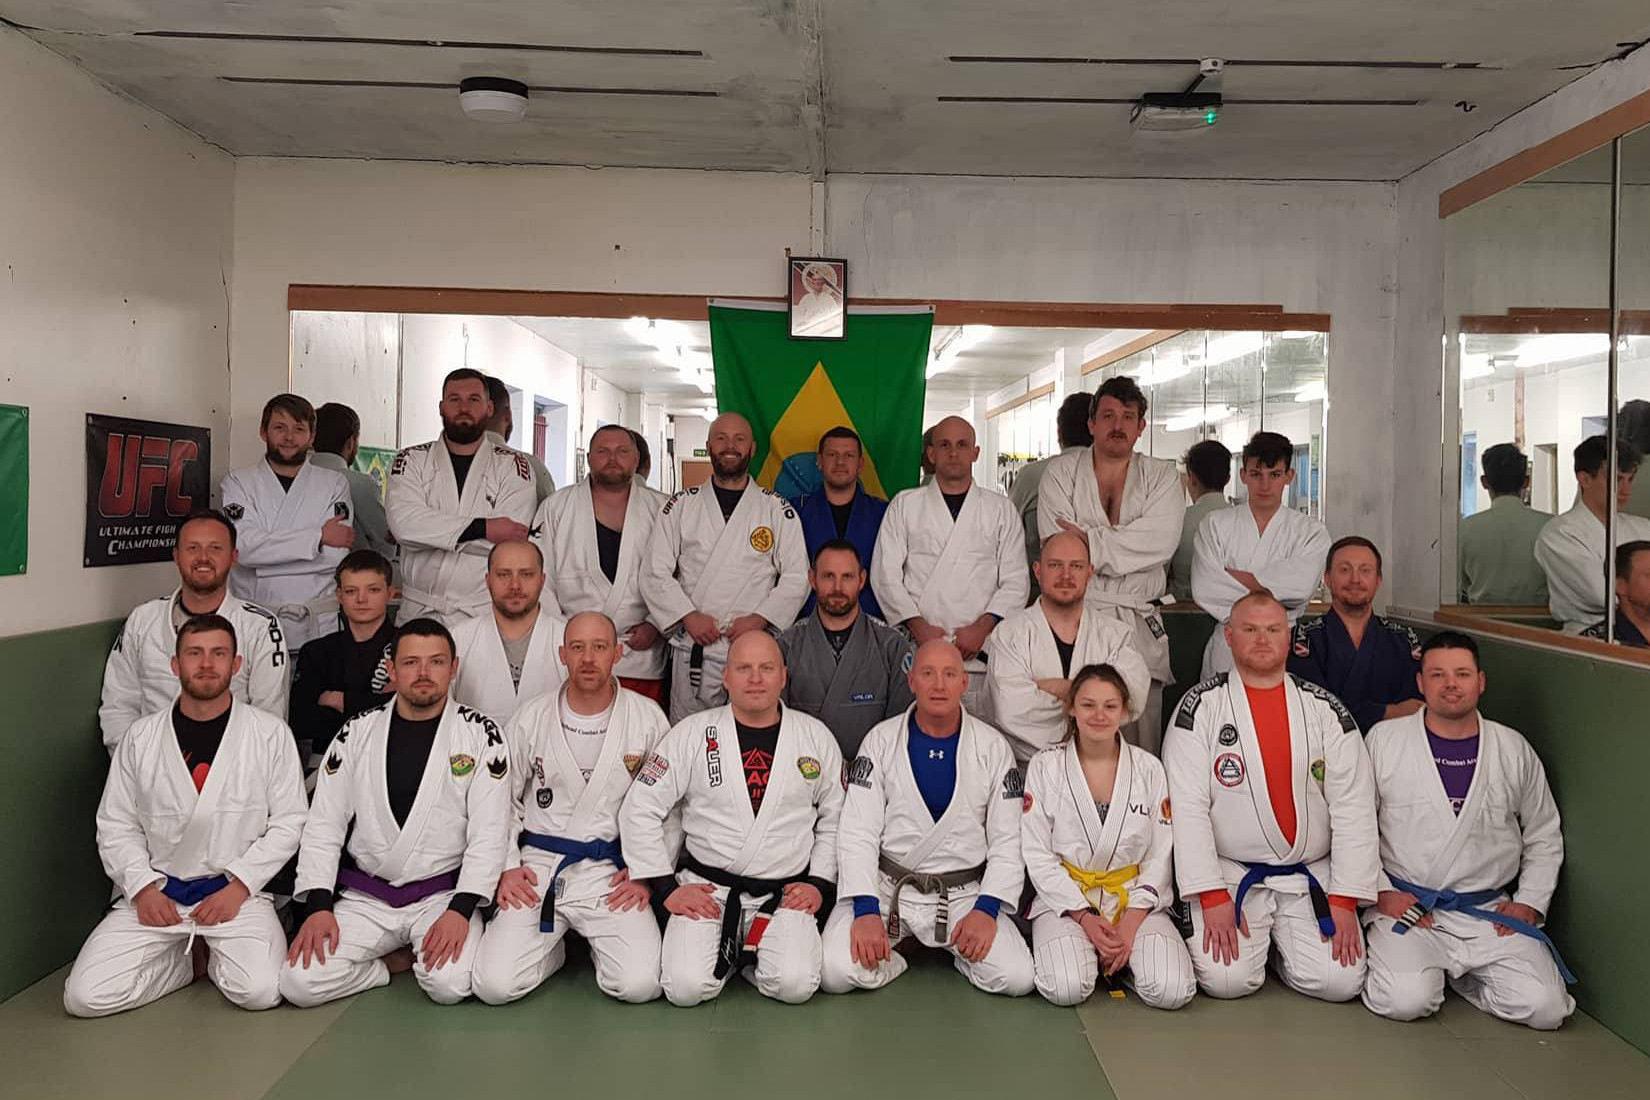 Johann Eyvindsson Seminar - March 2018 | Team Pedro Sauer UK